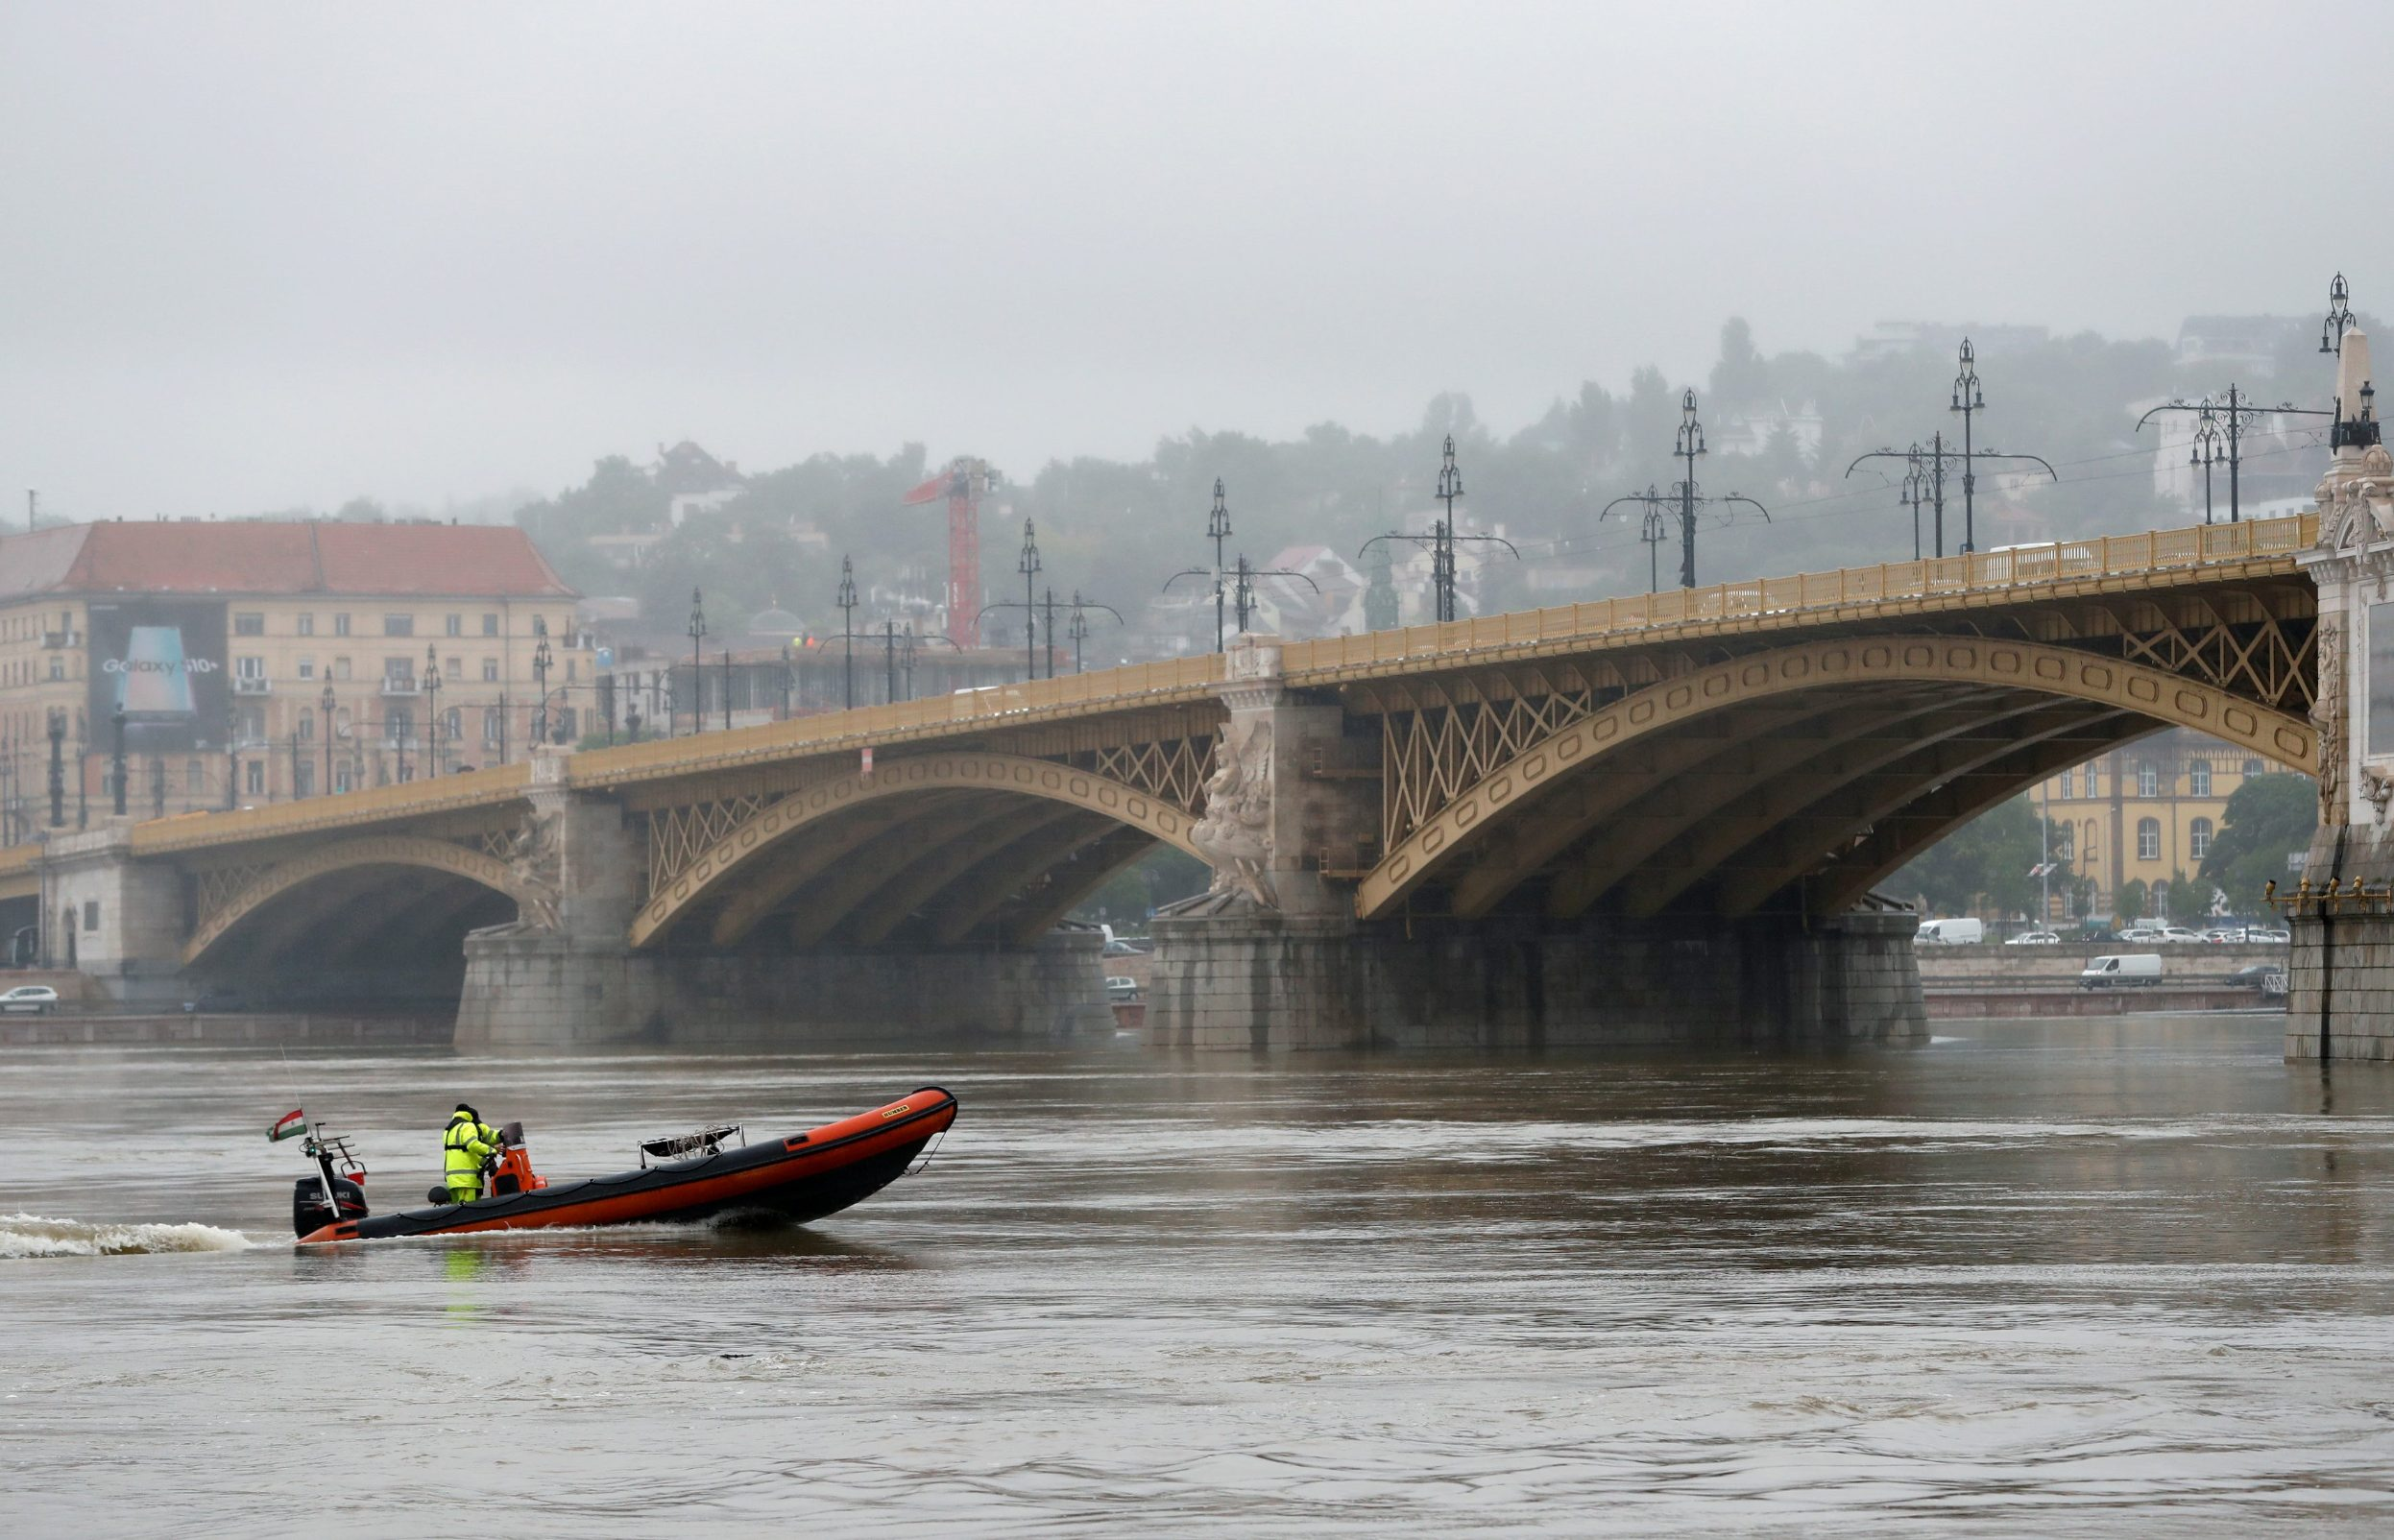 A rescue boat is seen after a ship accident that killed several people on the Danube river in Budapest, Hungary, May 30, 2019. REUTERS/Bernadett Szabo